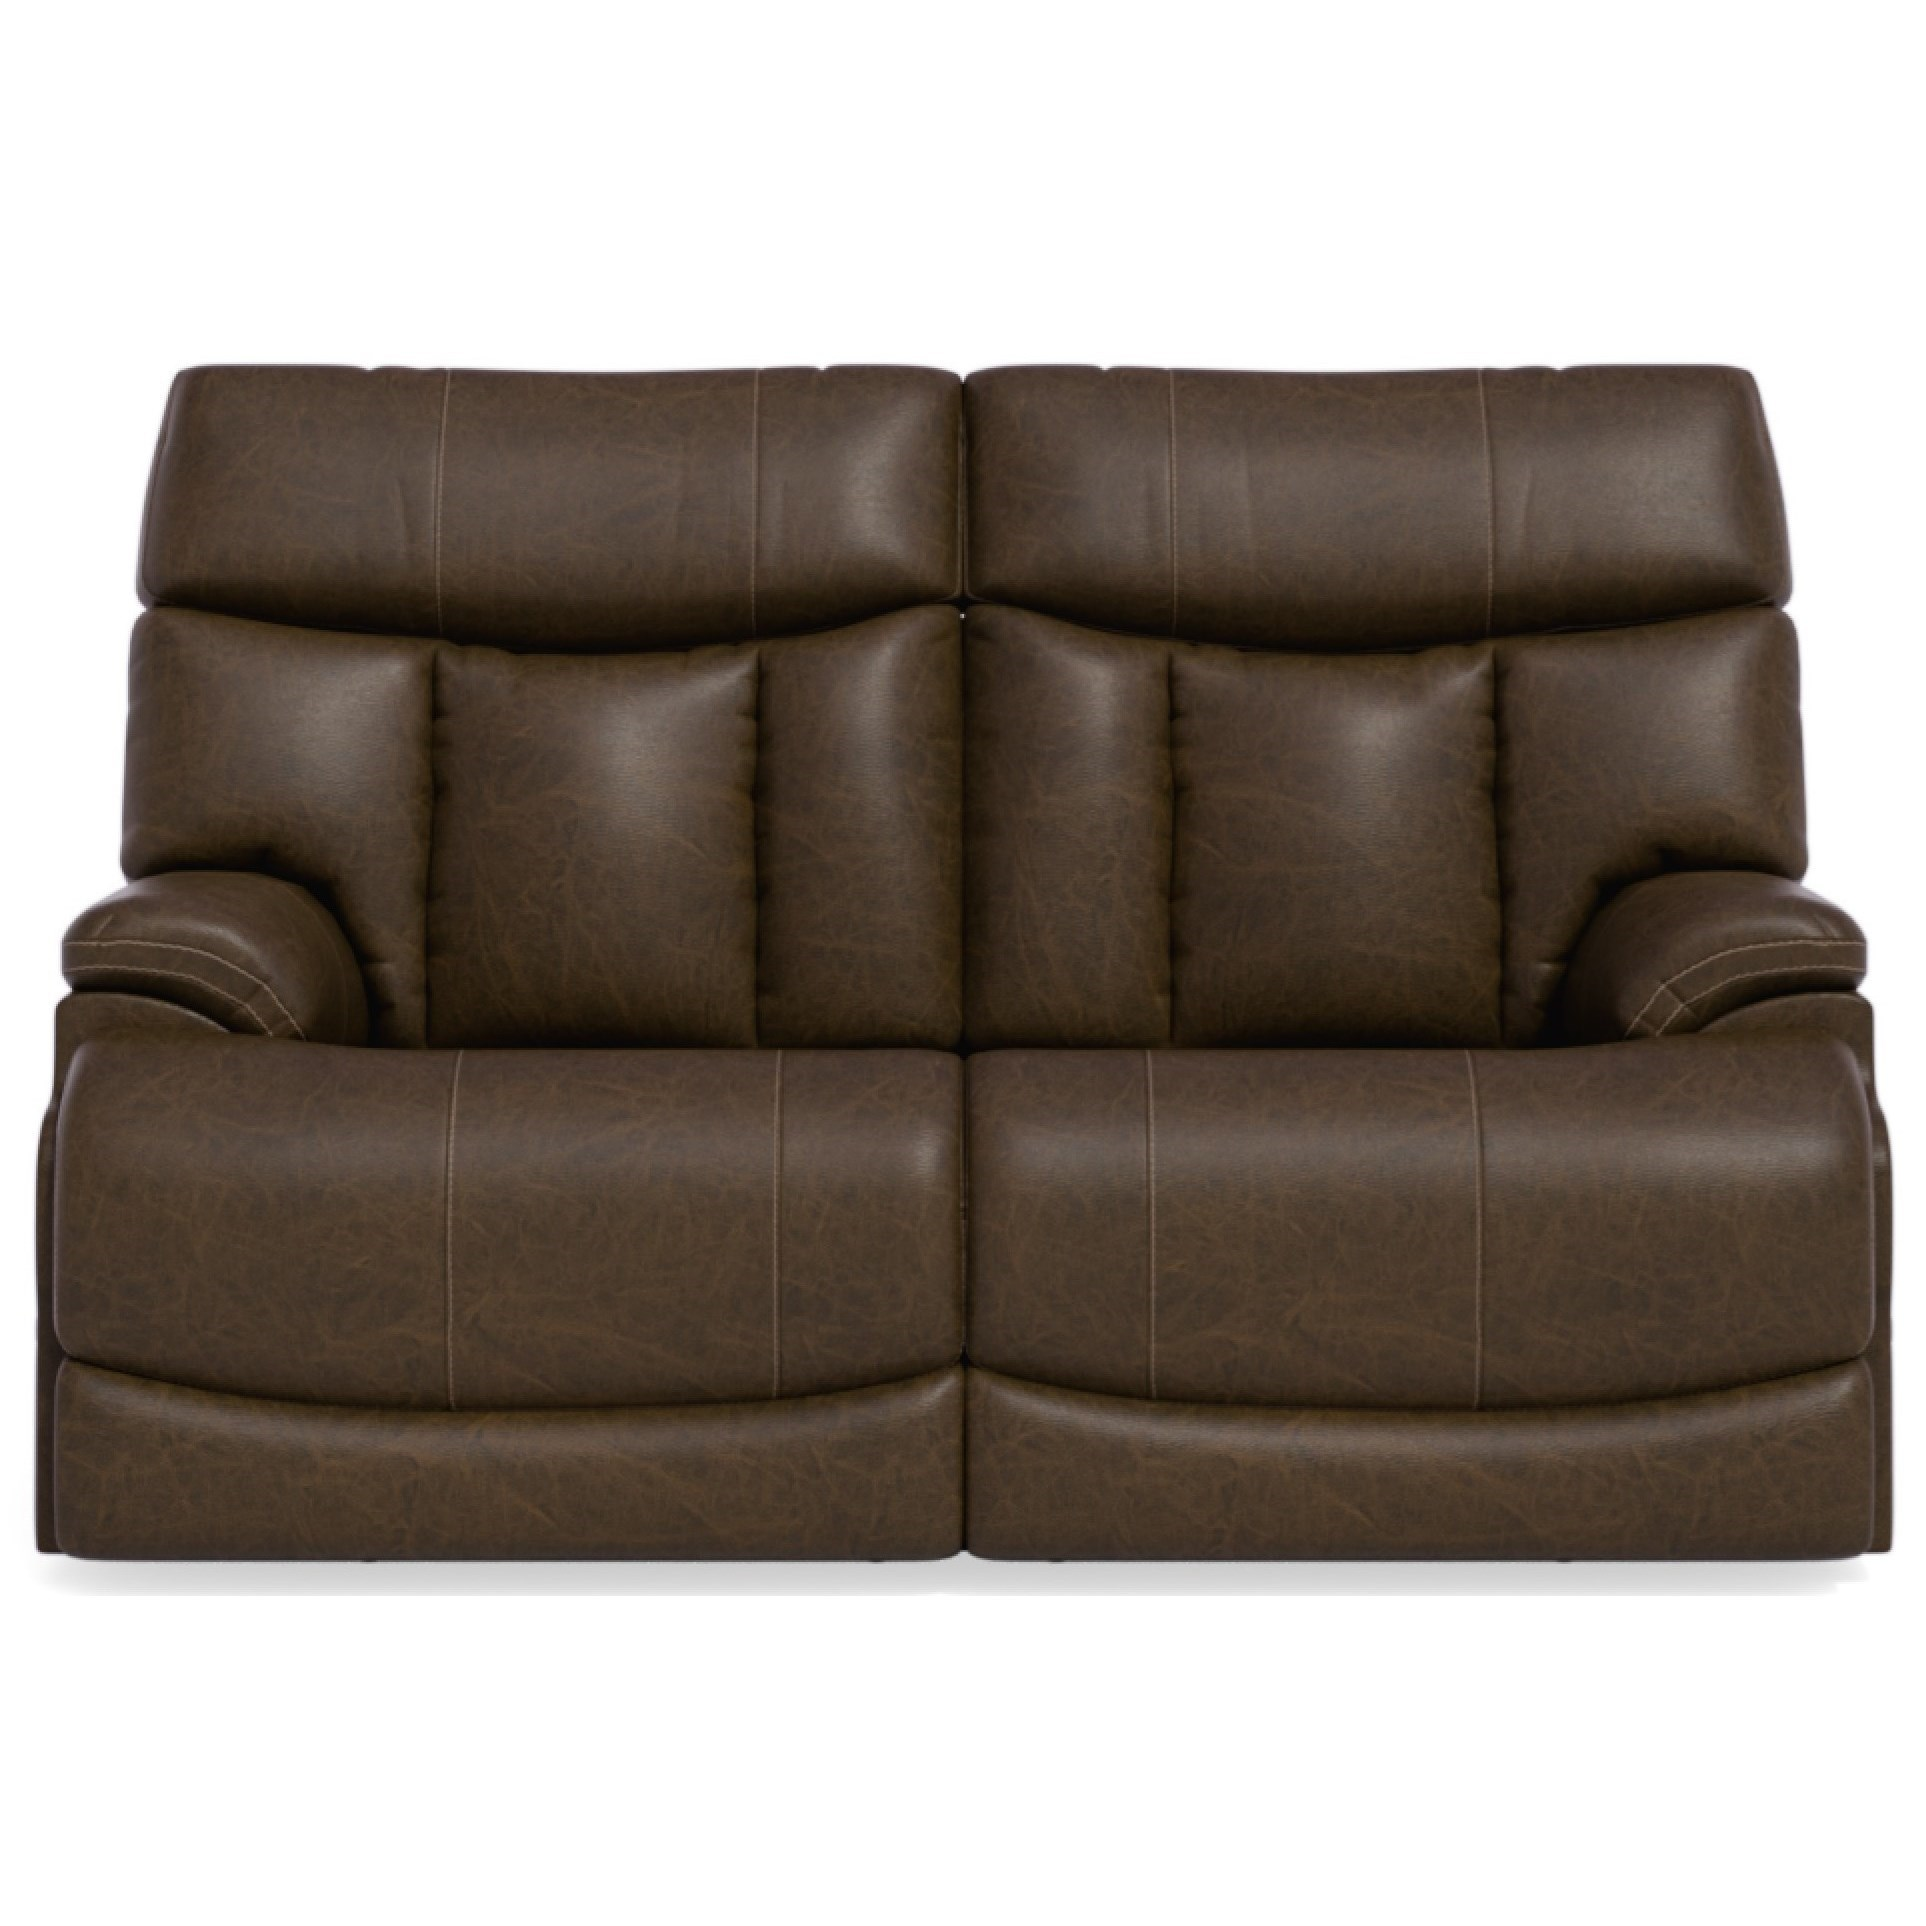 Latitudes-Clive Reclining Loveseat by Flexsteel at Zak's Home